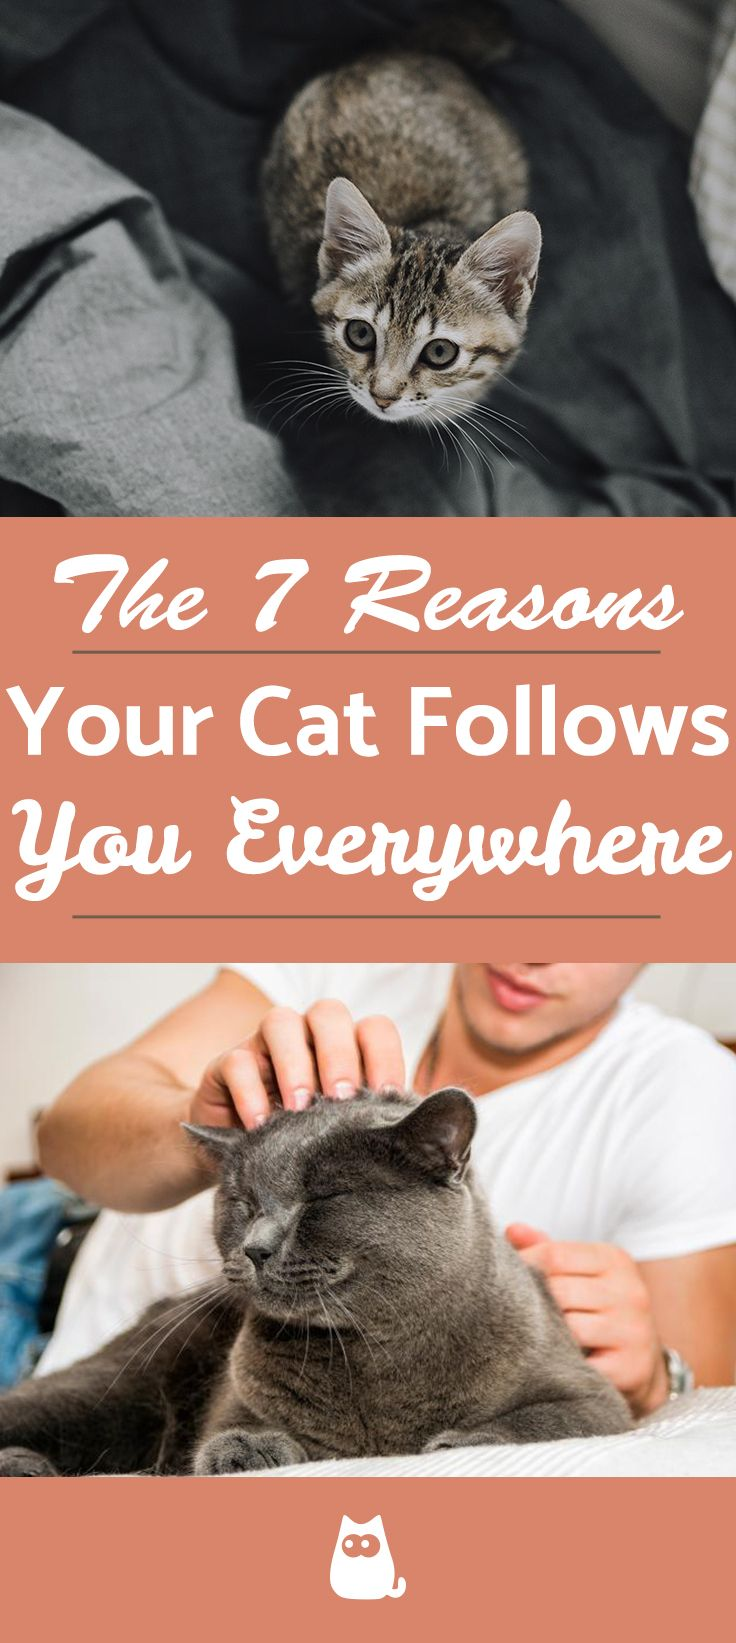 Why Does My Cat Follow Me Everywhere? Cats, Cat behavior